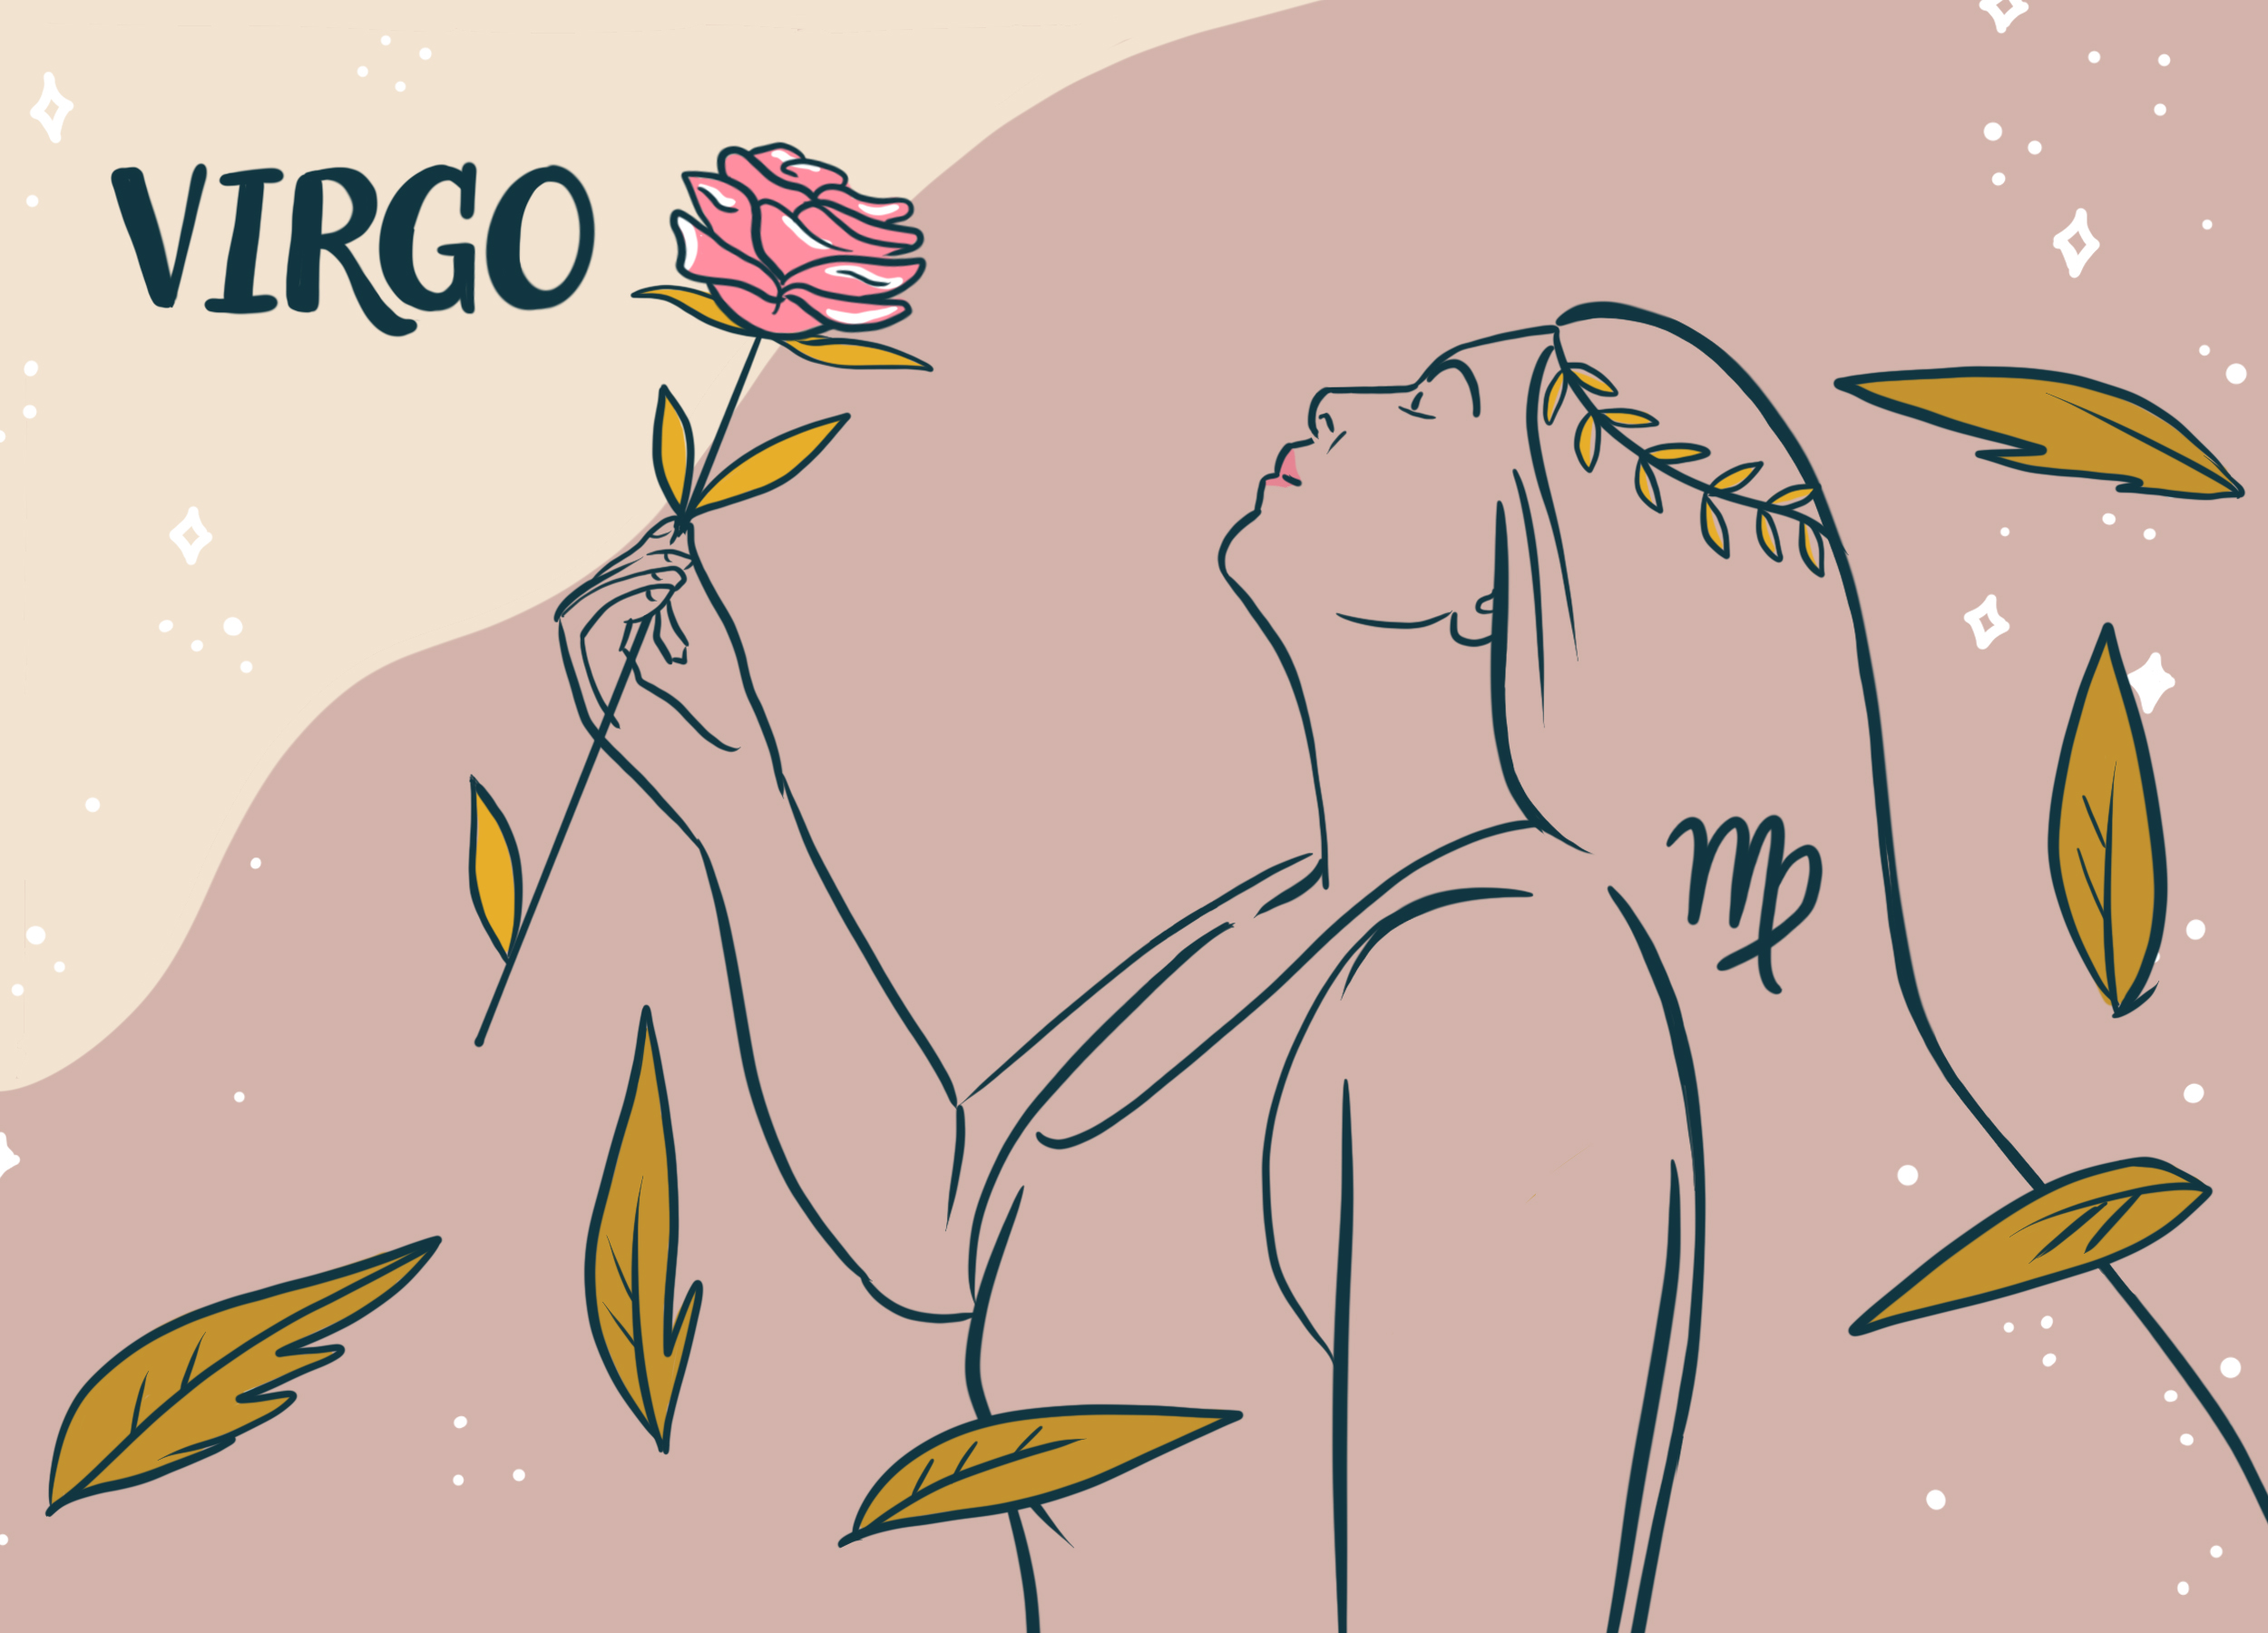 Here's how to become a better version of yourself during Virgo season